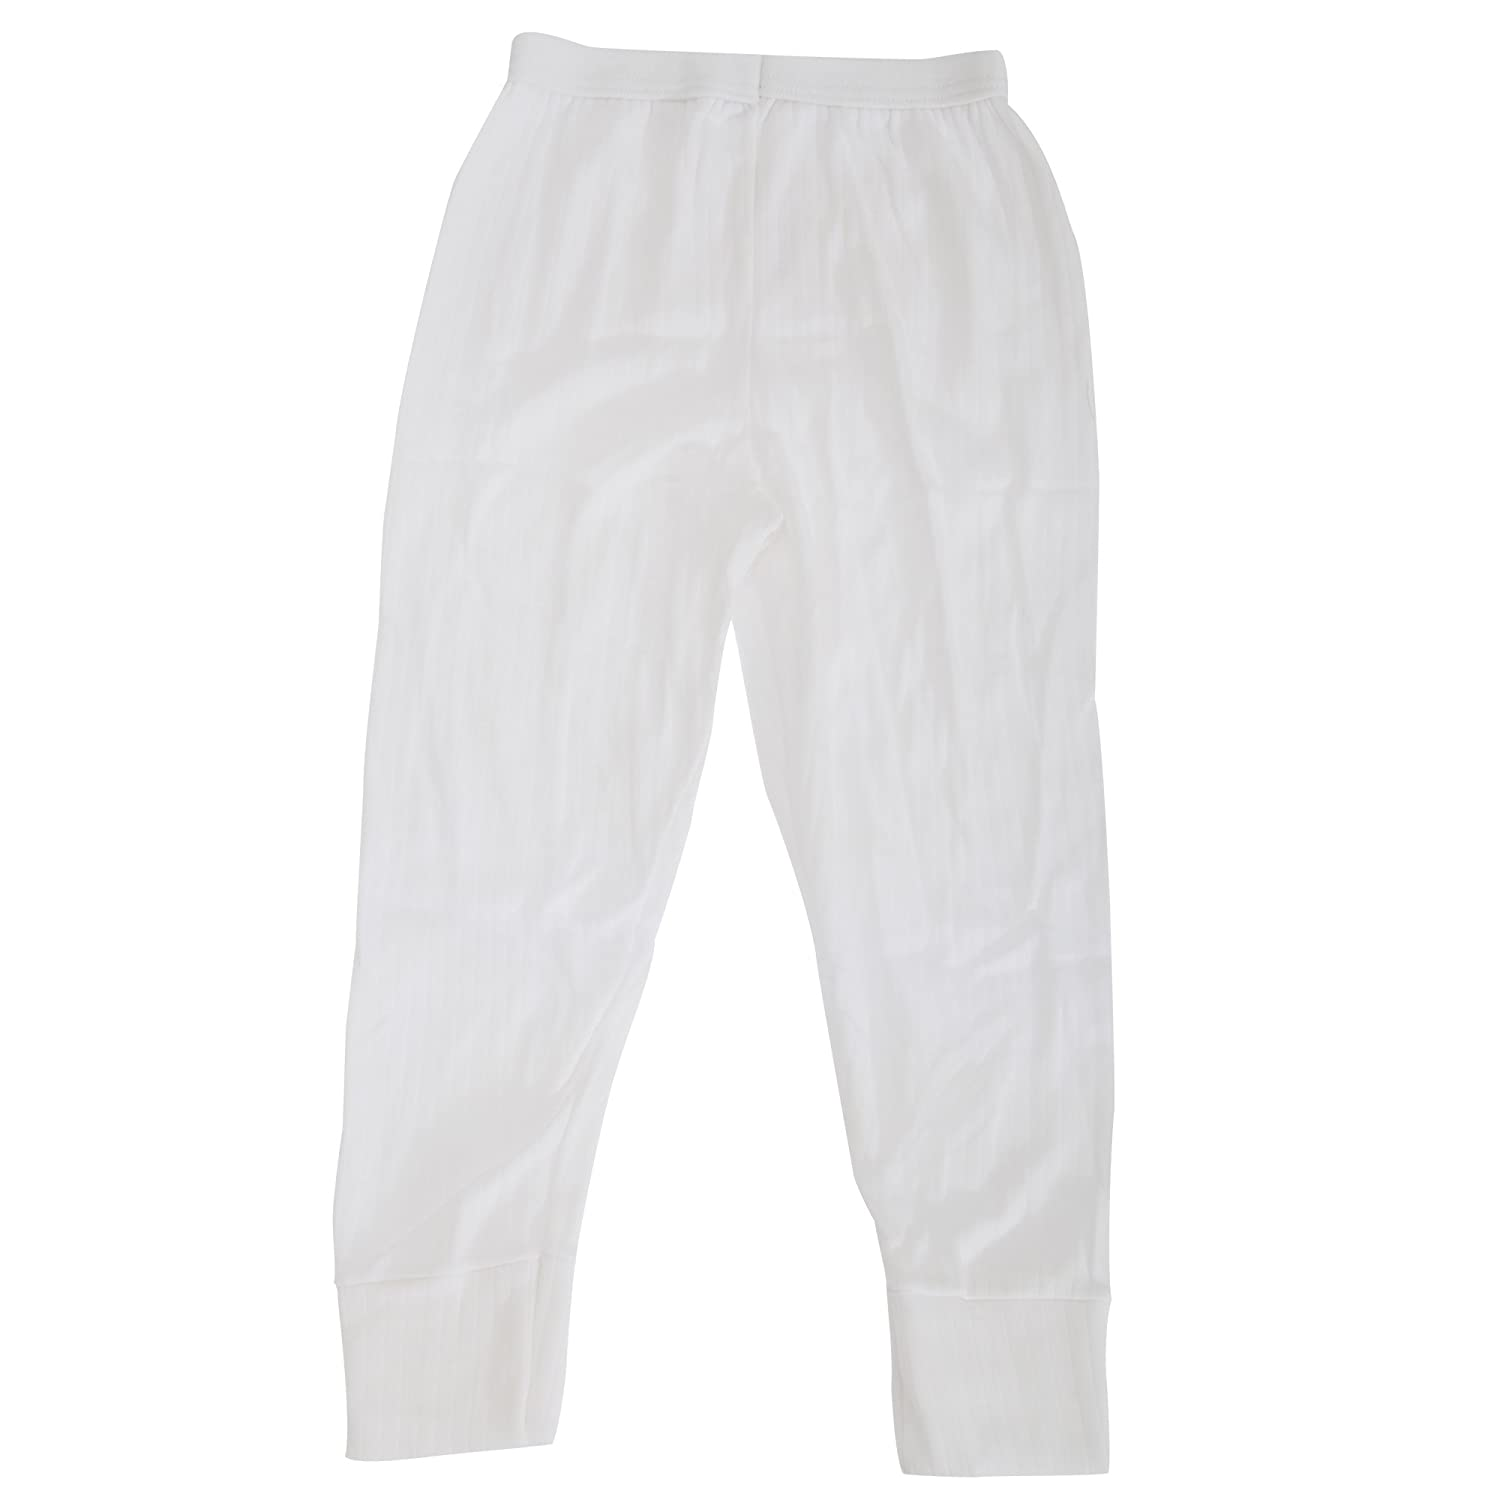 Boys Thermal Clothing Long Johns Polyviscose Range (British Made)